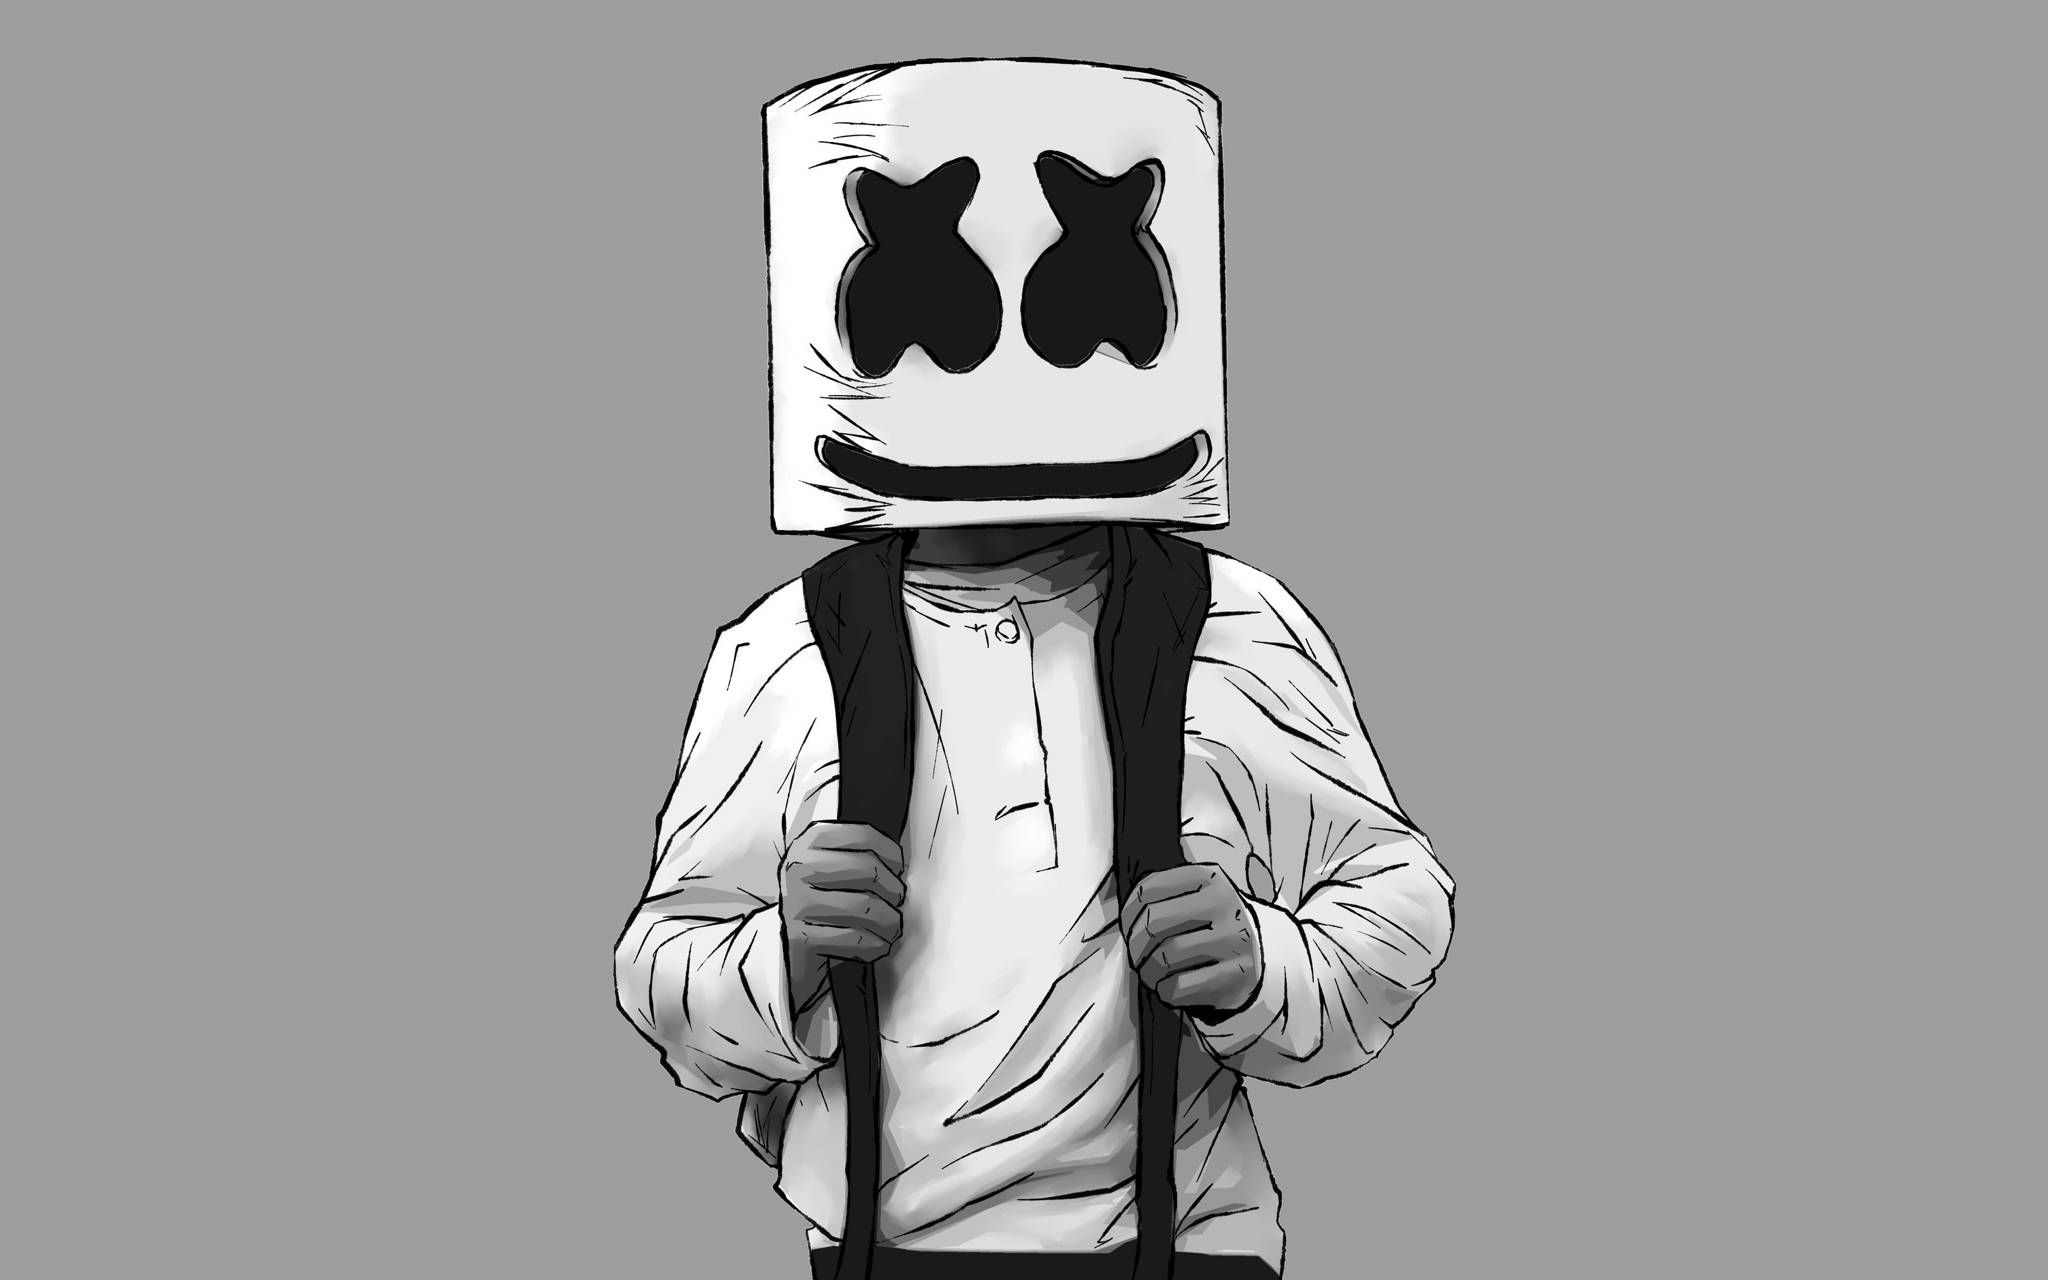 Marshmello Artwork, Cute wallpapers, Dj art